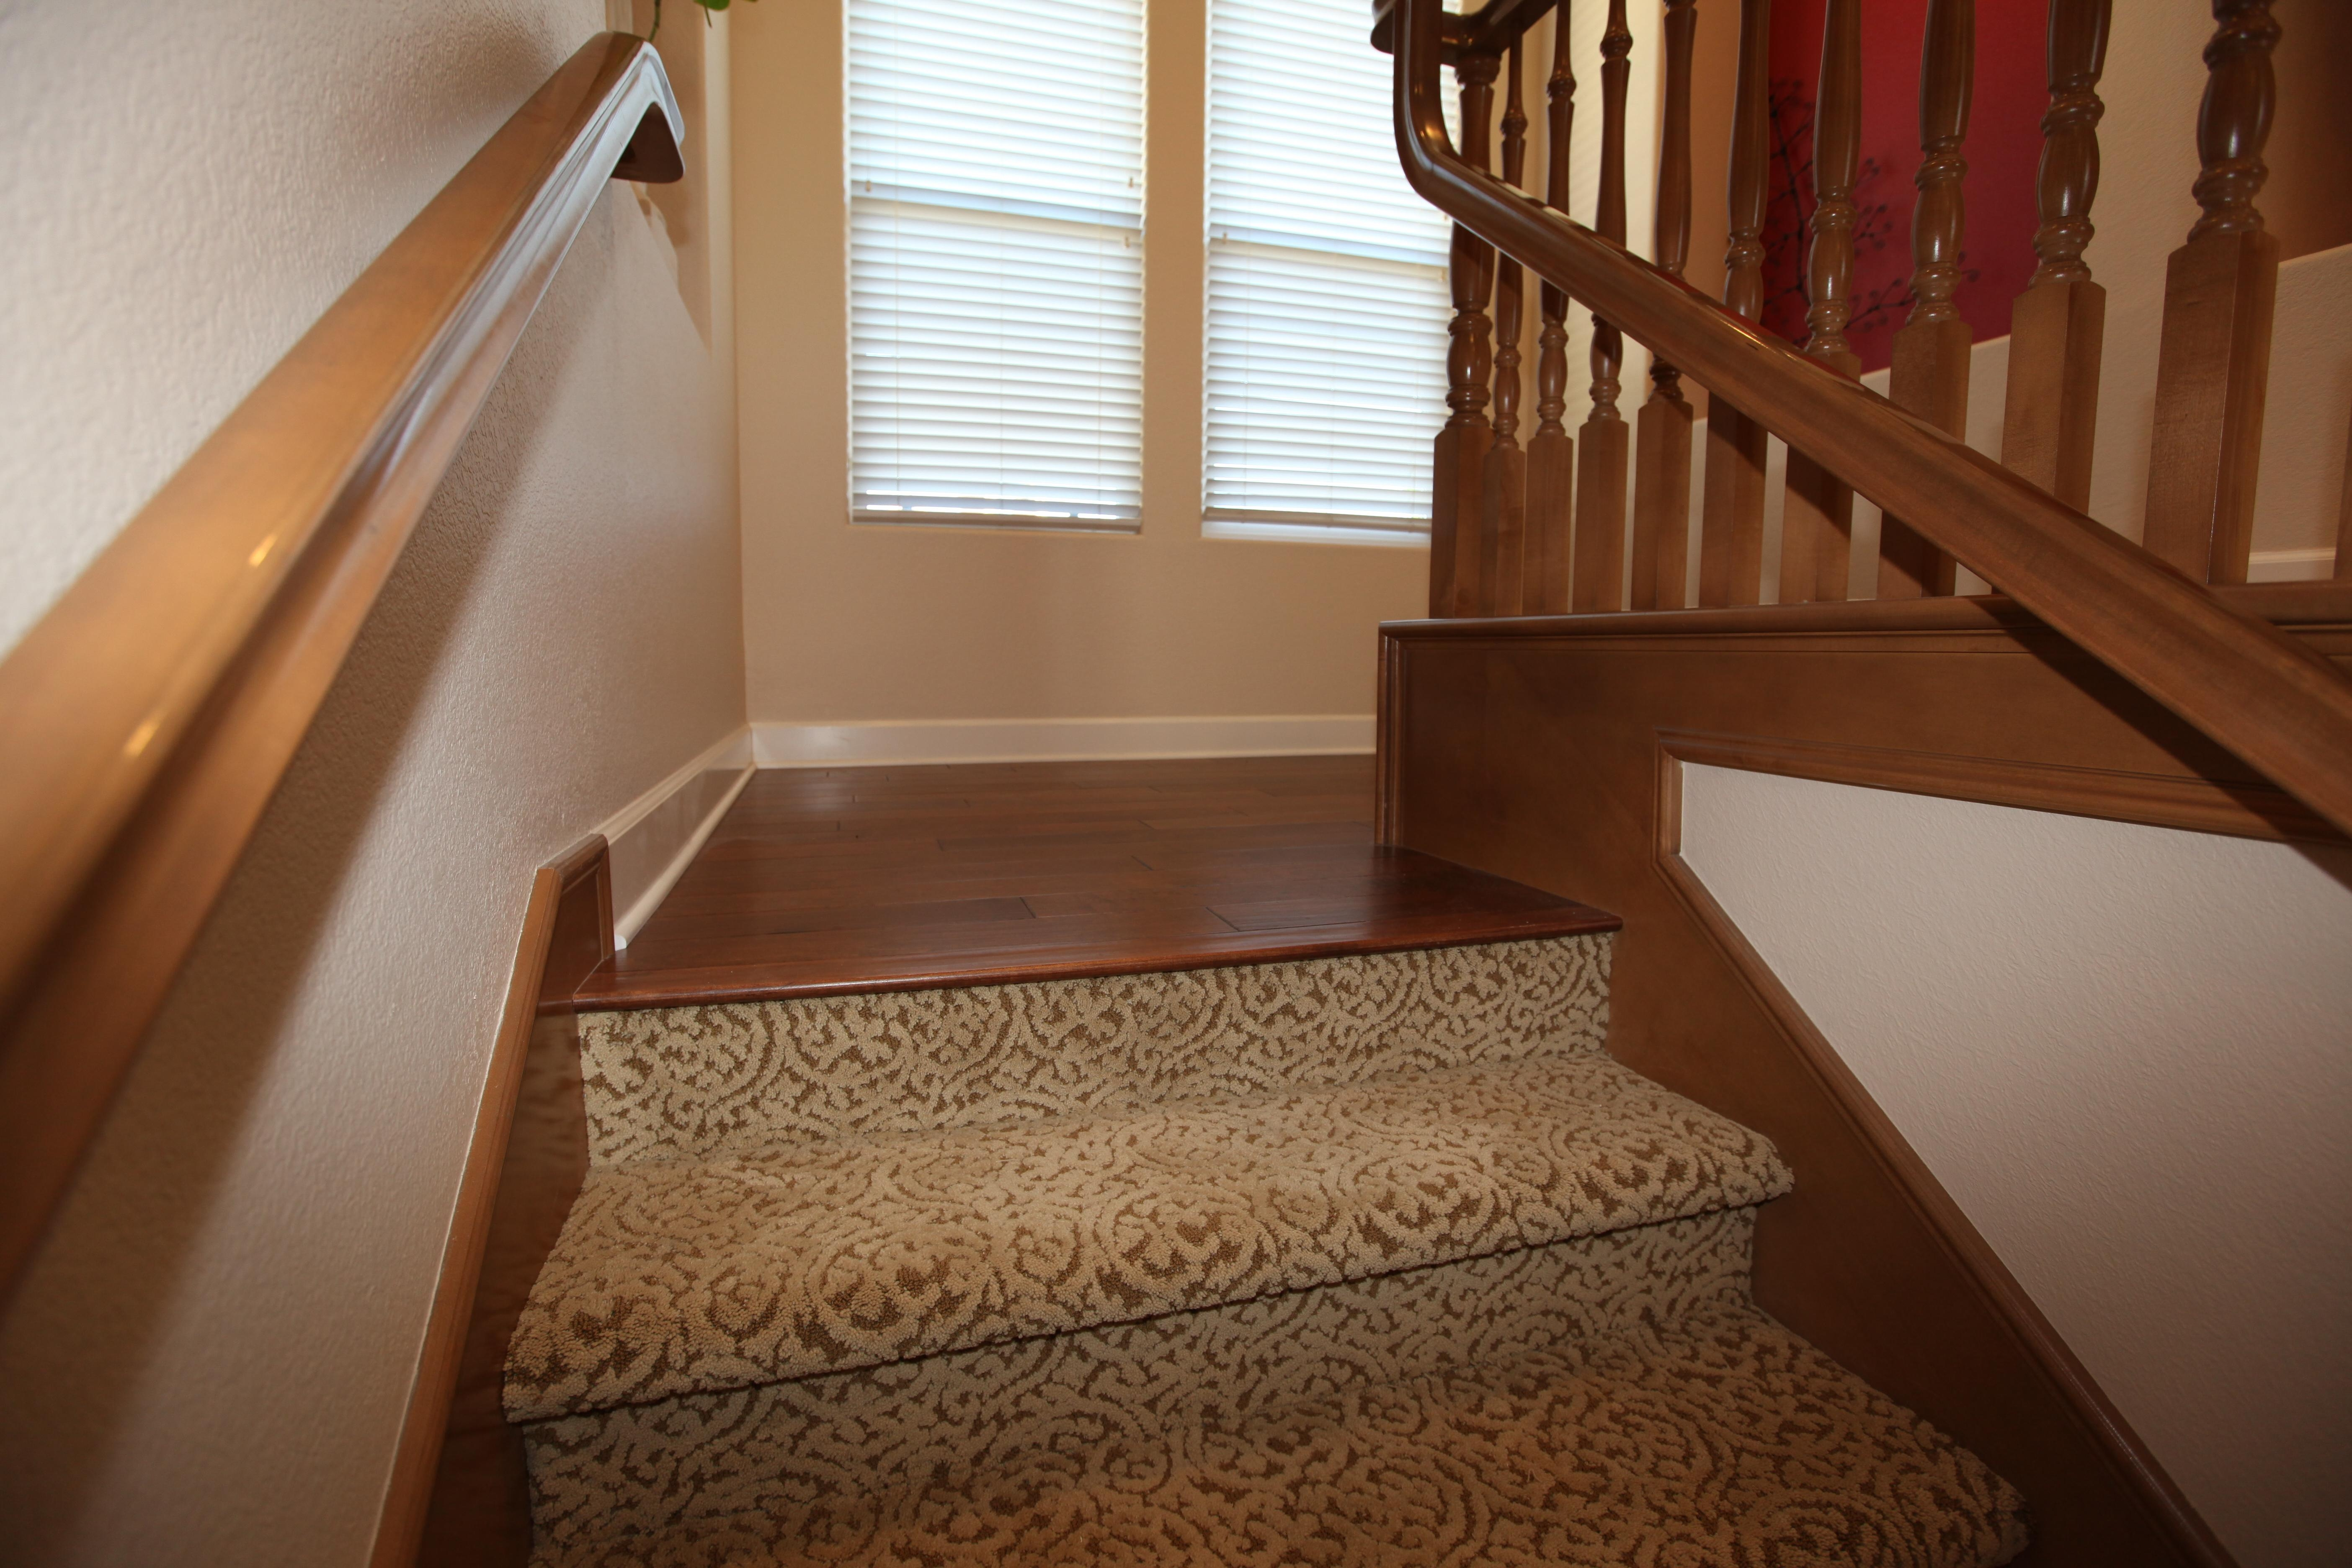 Wood Floor Carpet Stairs Transition